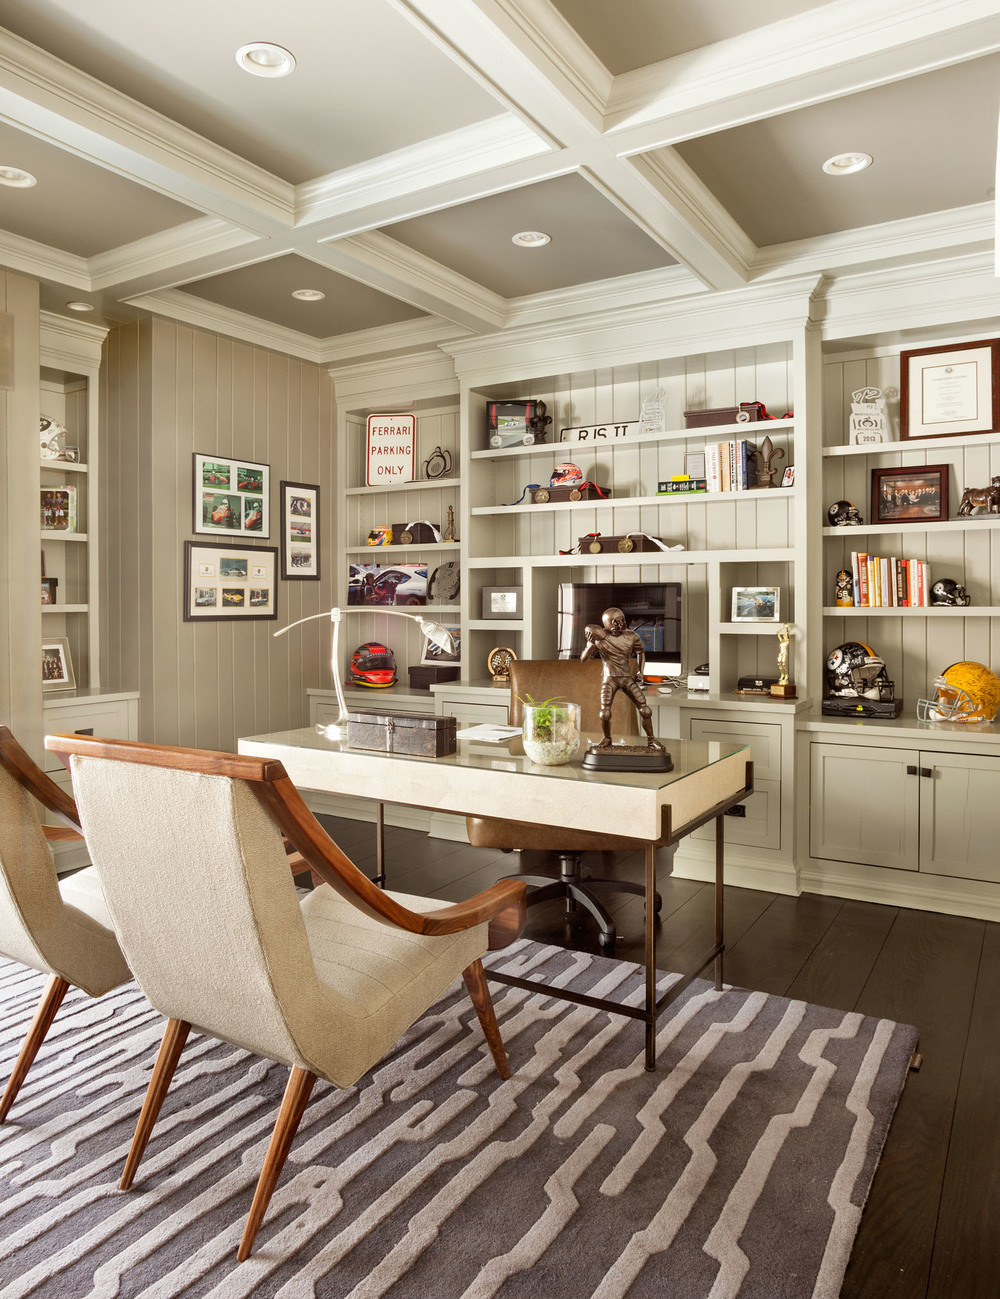 garrison-hullinger-interior-design-boxy-furniture-modern-feel